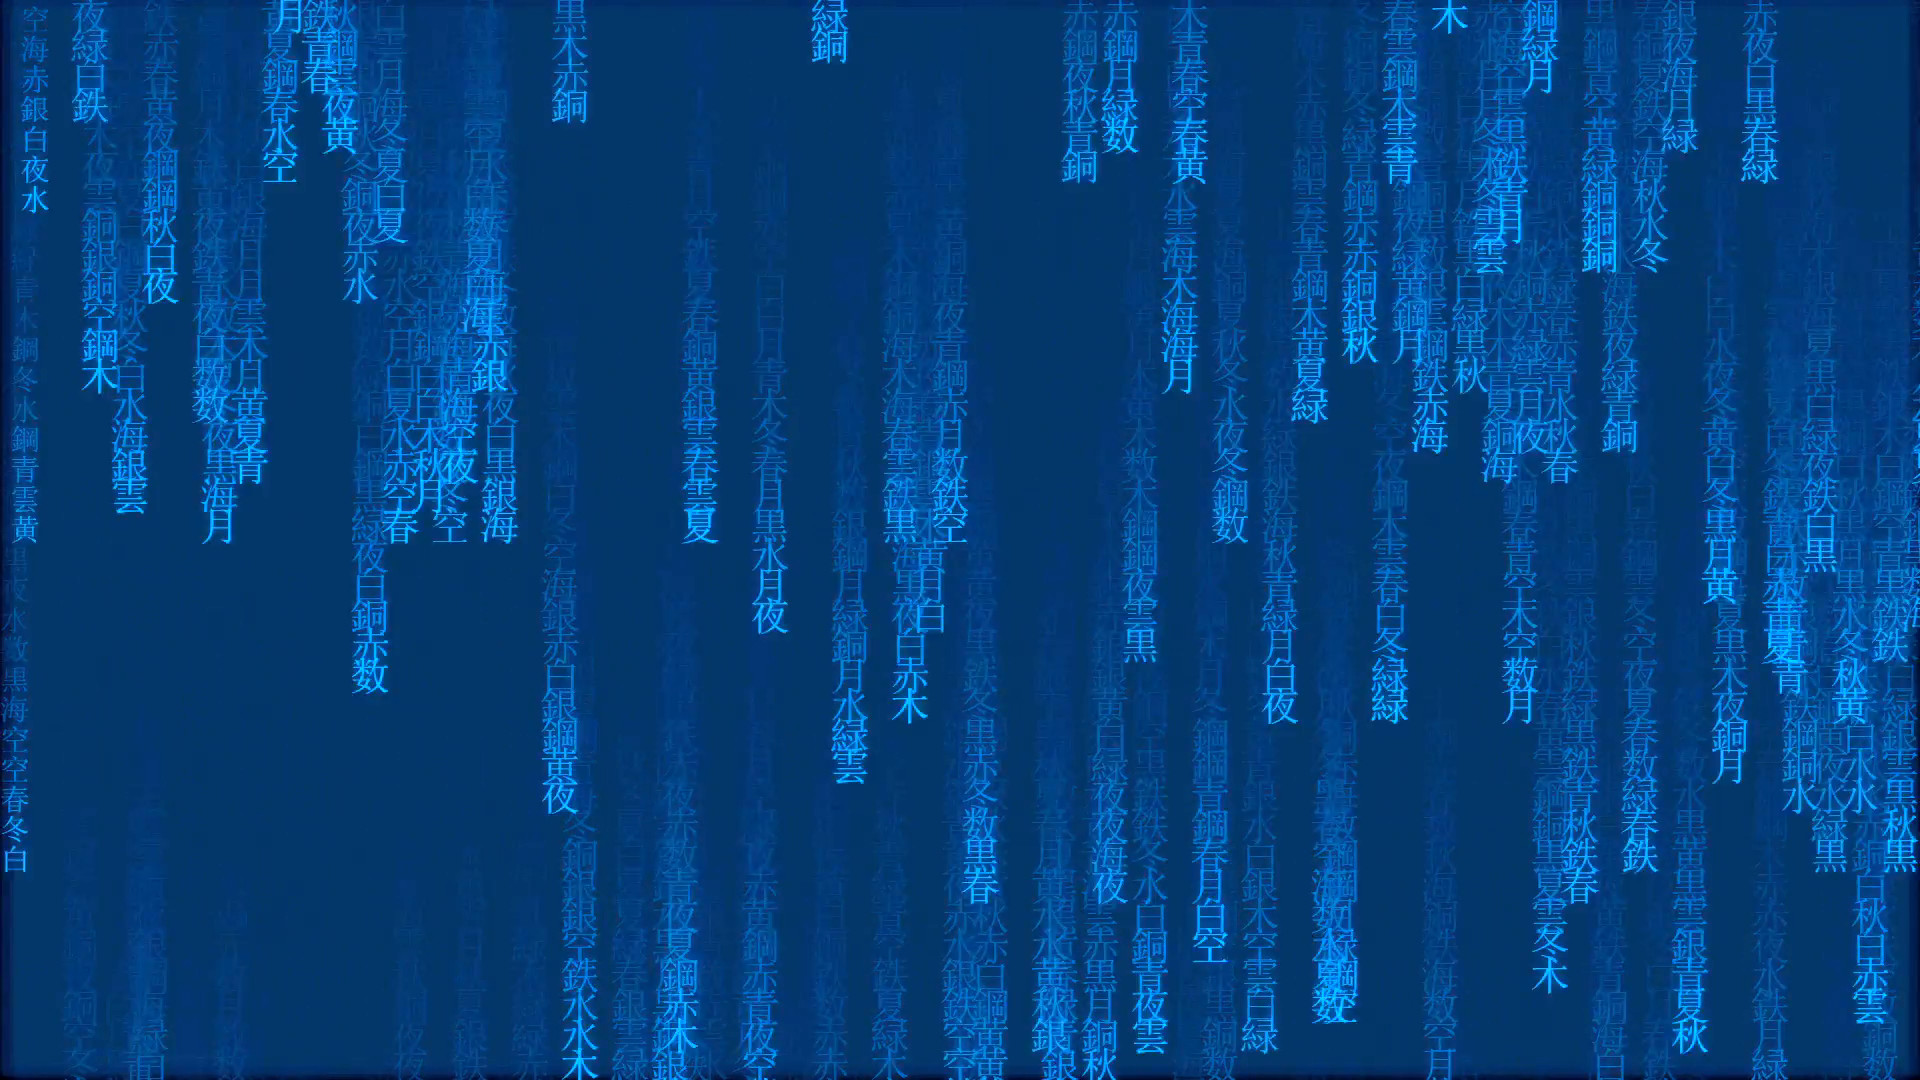 Matrix Falling Code Wallpaper Download Blue Matrix Wallpaper 56 Images